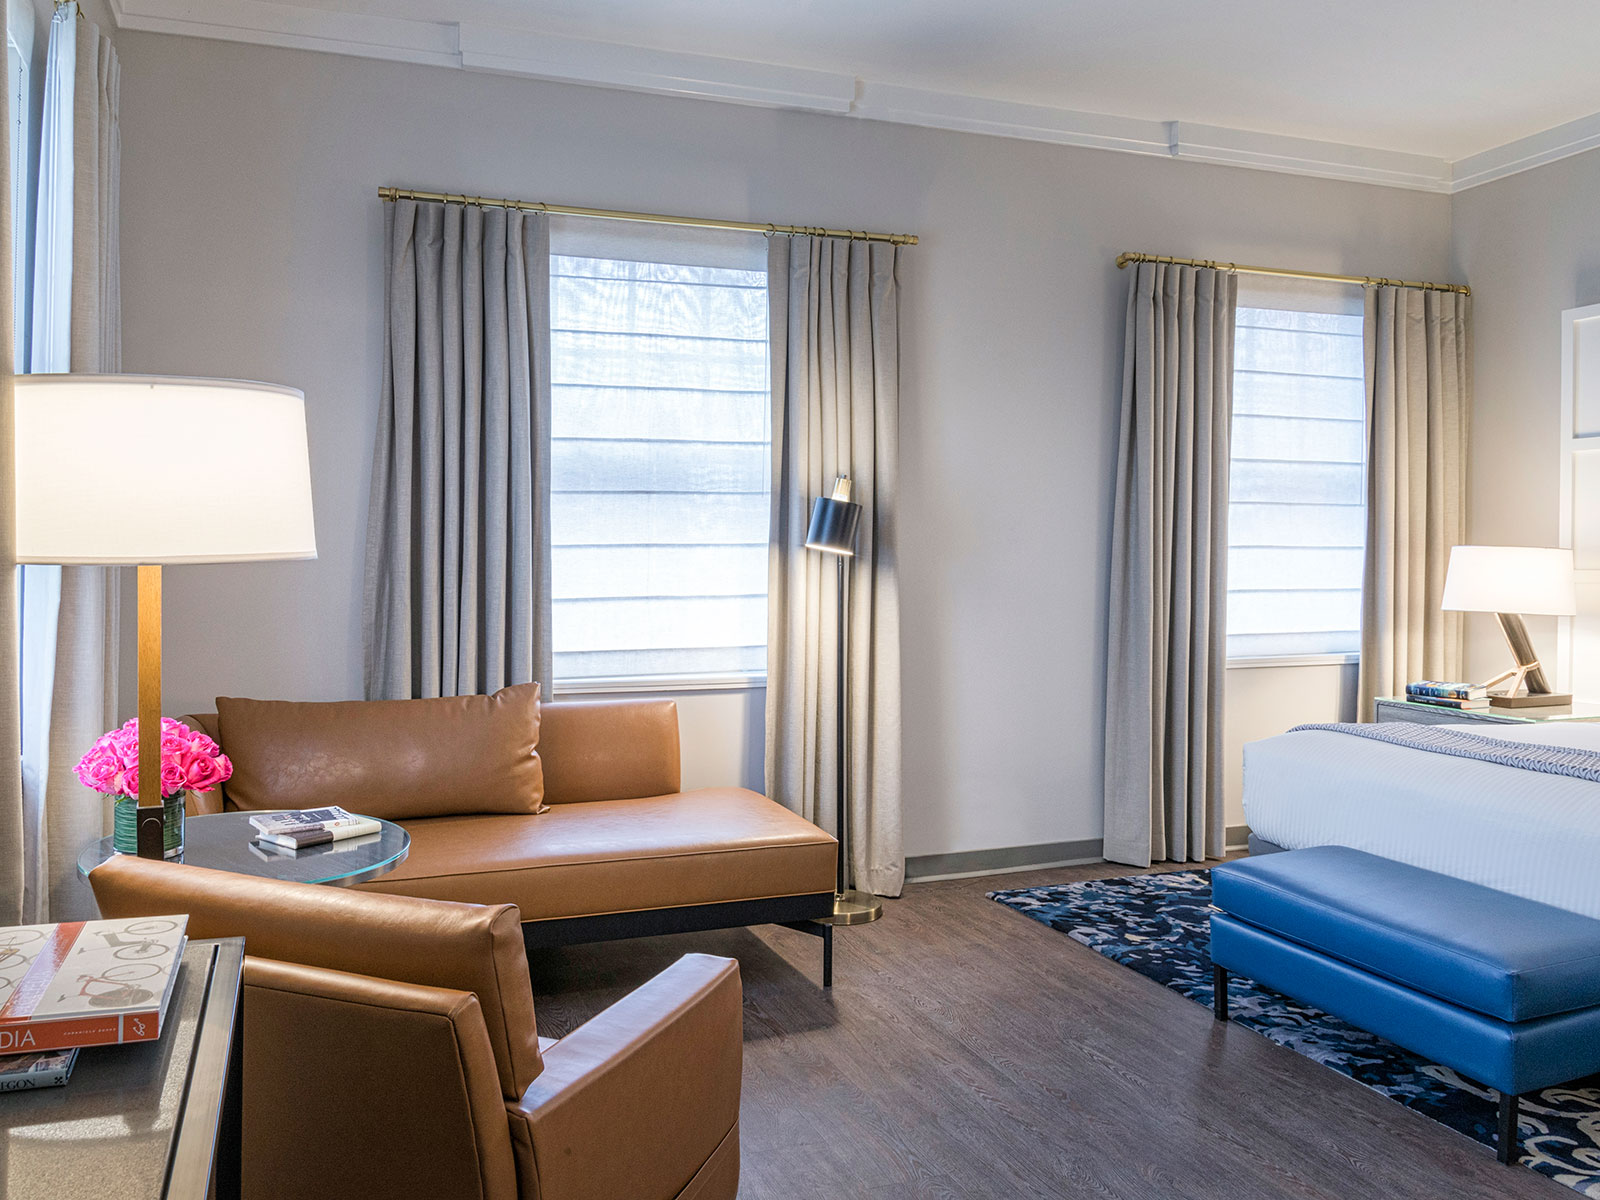 A soft, neutral palate runs throughout the guestrooms from the whitewashed wood paneled walls to the warm wood flooring.